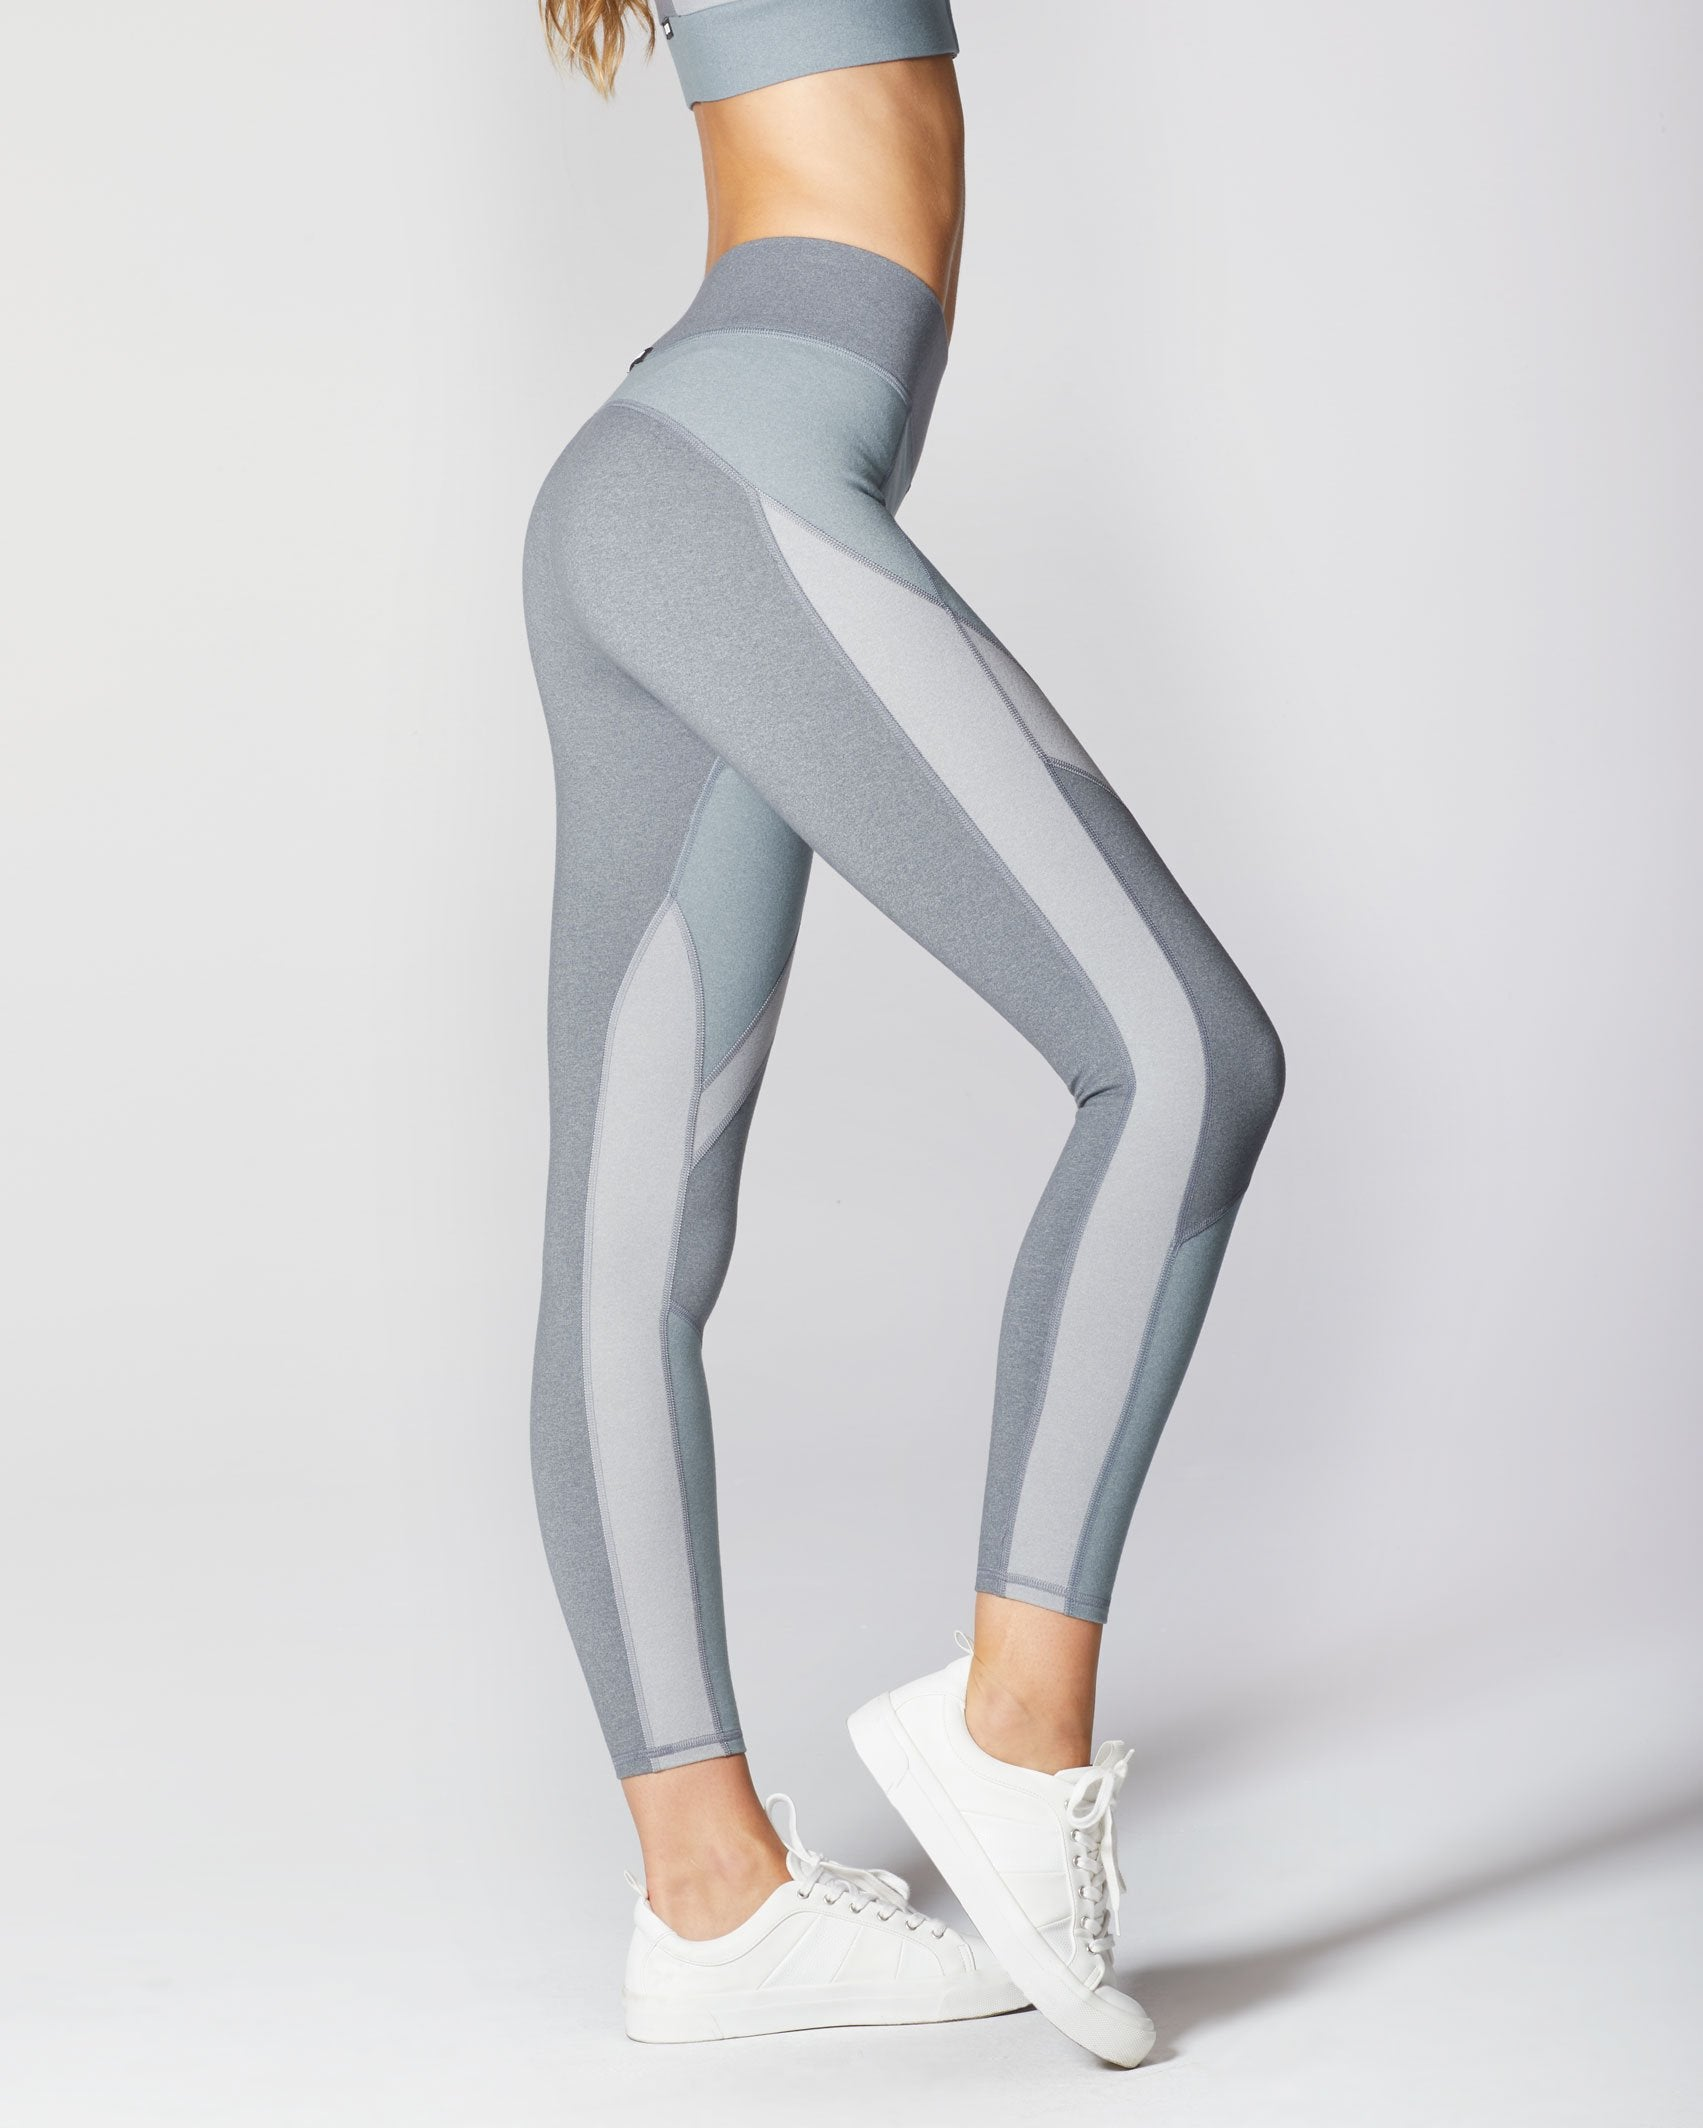 mist-legging-angelite-blue